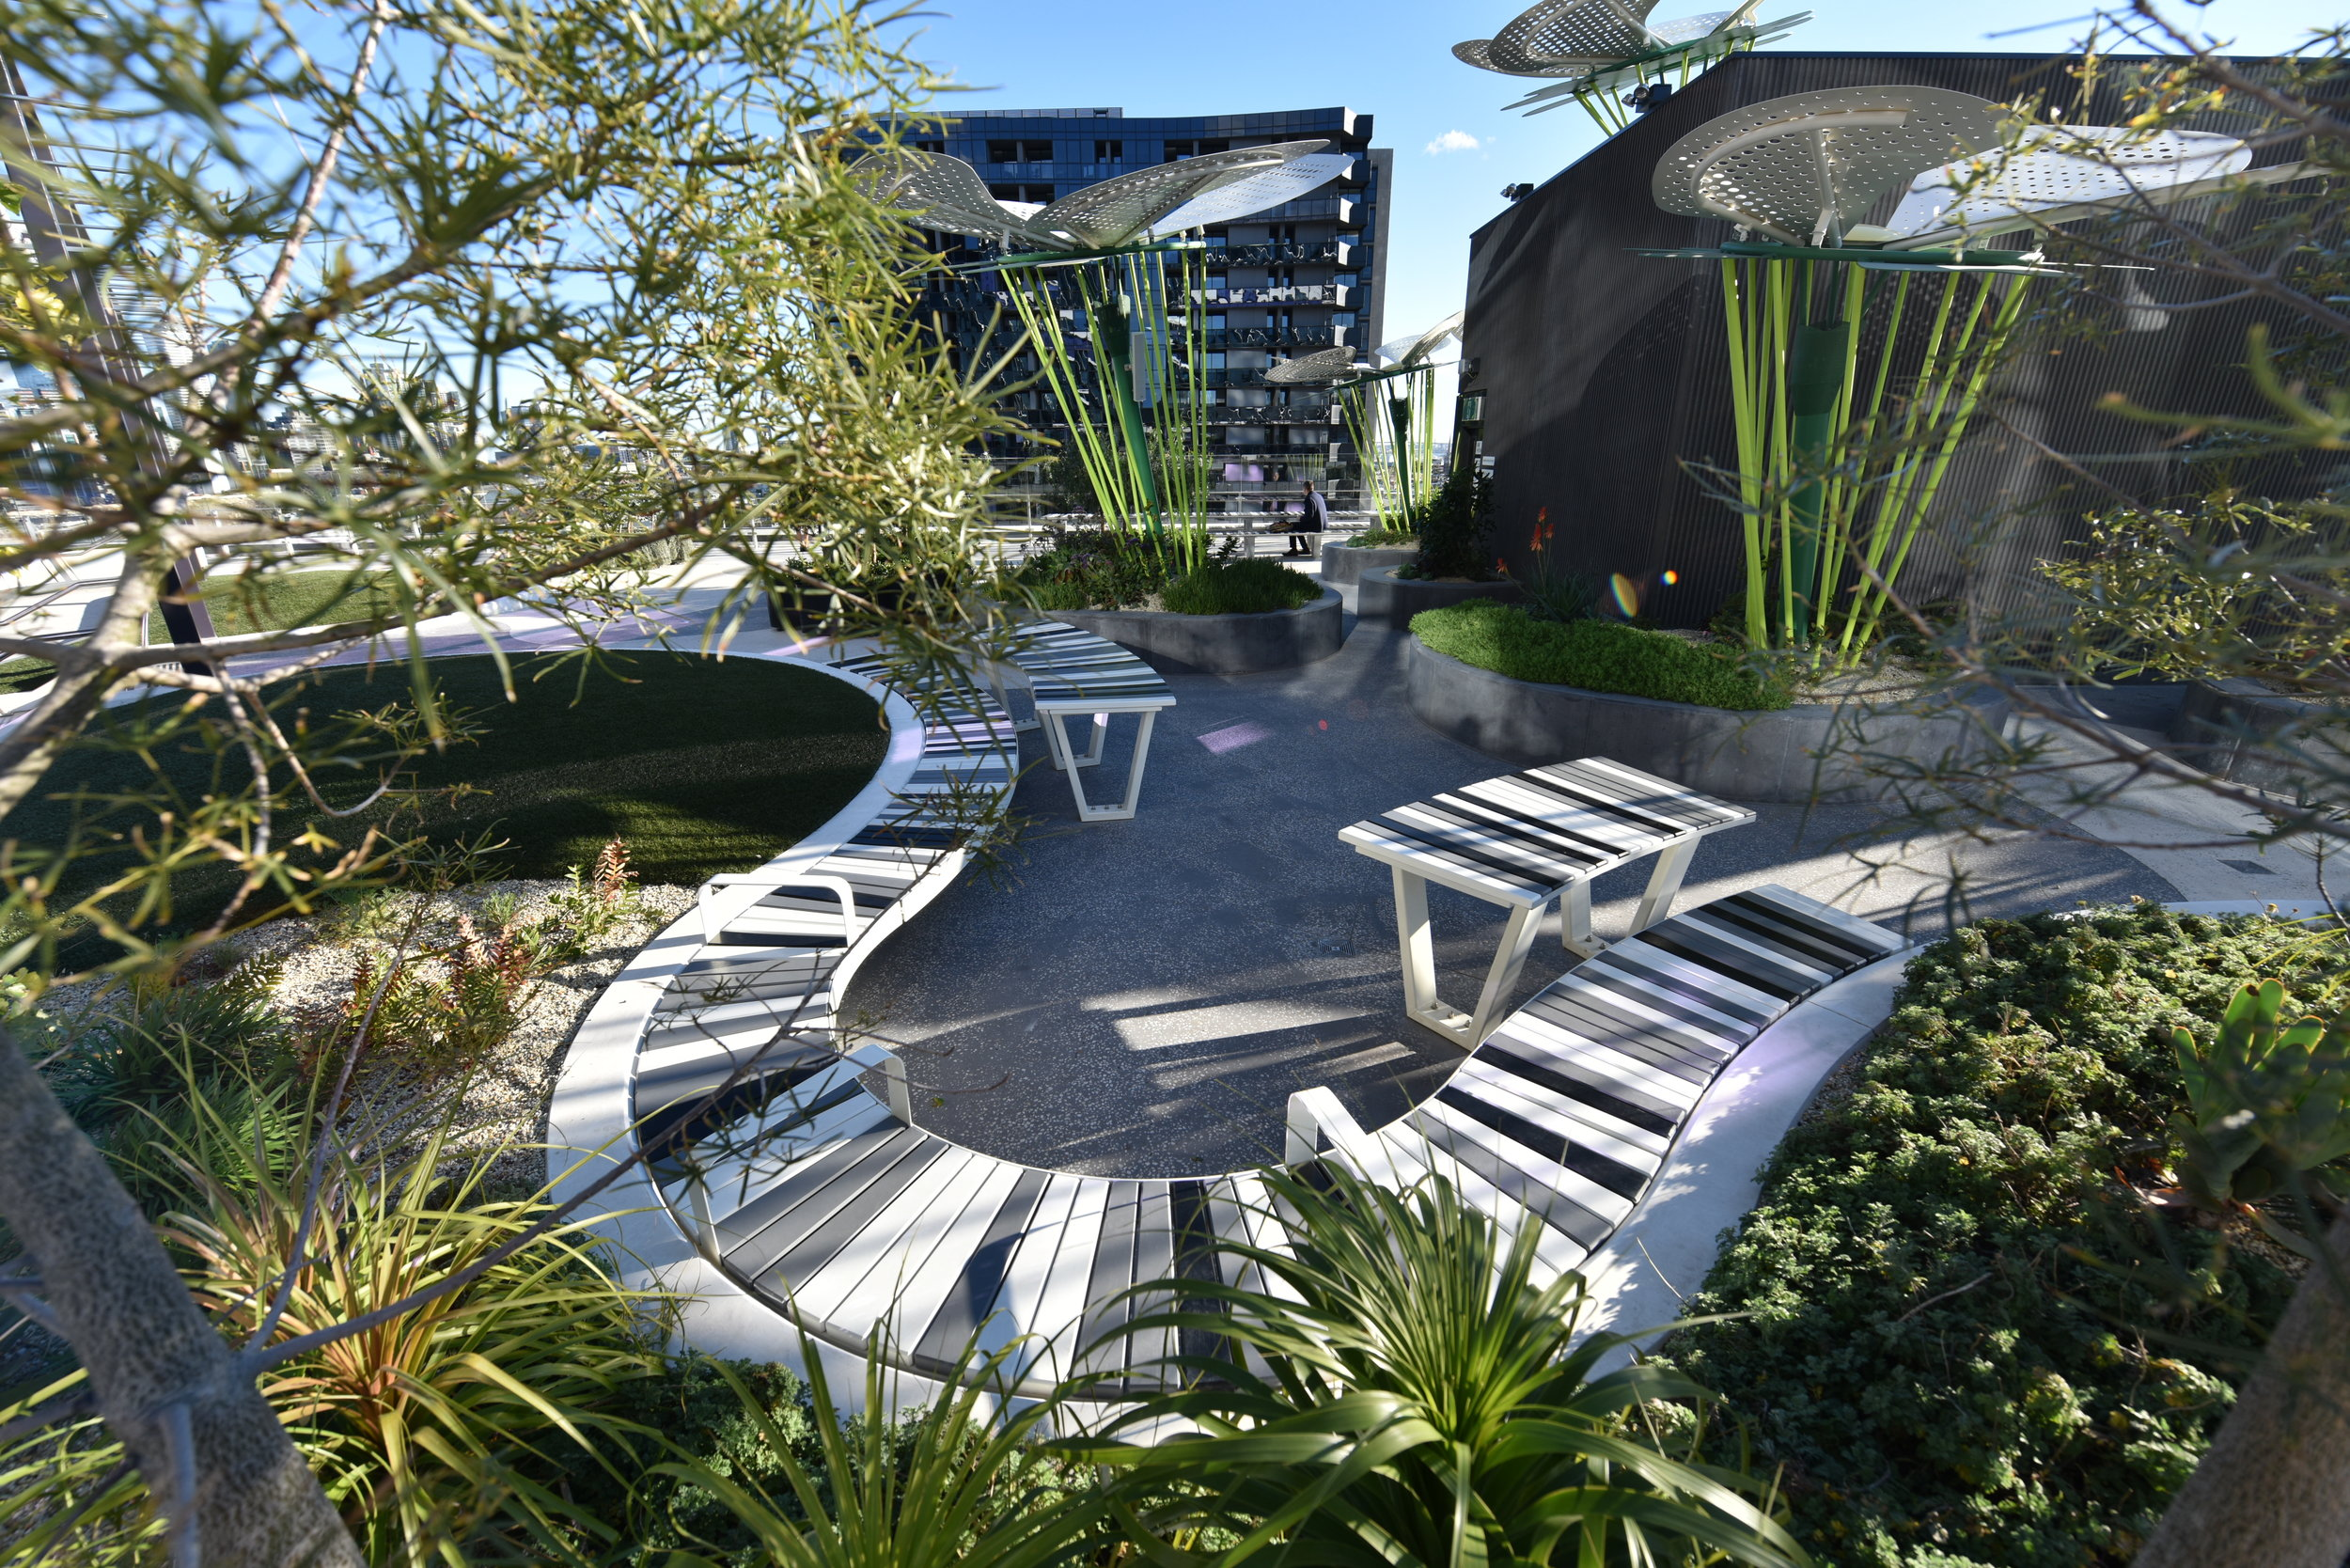 All the landscape spaces were designed around seating opportunities, and to work year-round. Plastic battens were used extensively, for cleanliness and for minimal maintenance. The material has a recycled content, and is available in a wide range of colours. Photo credit: Michael Wright